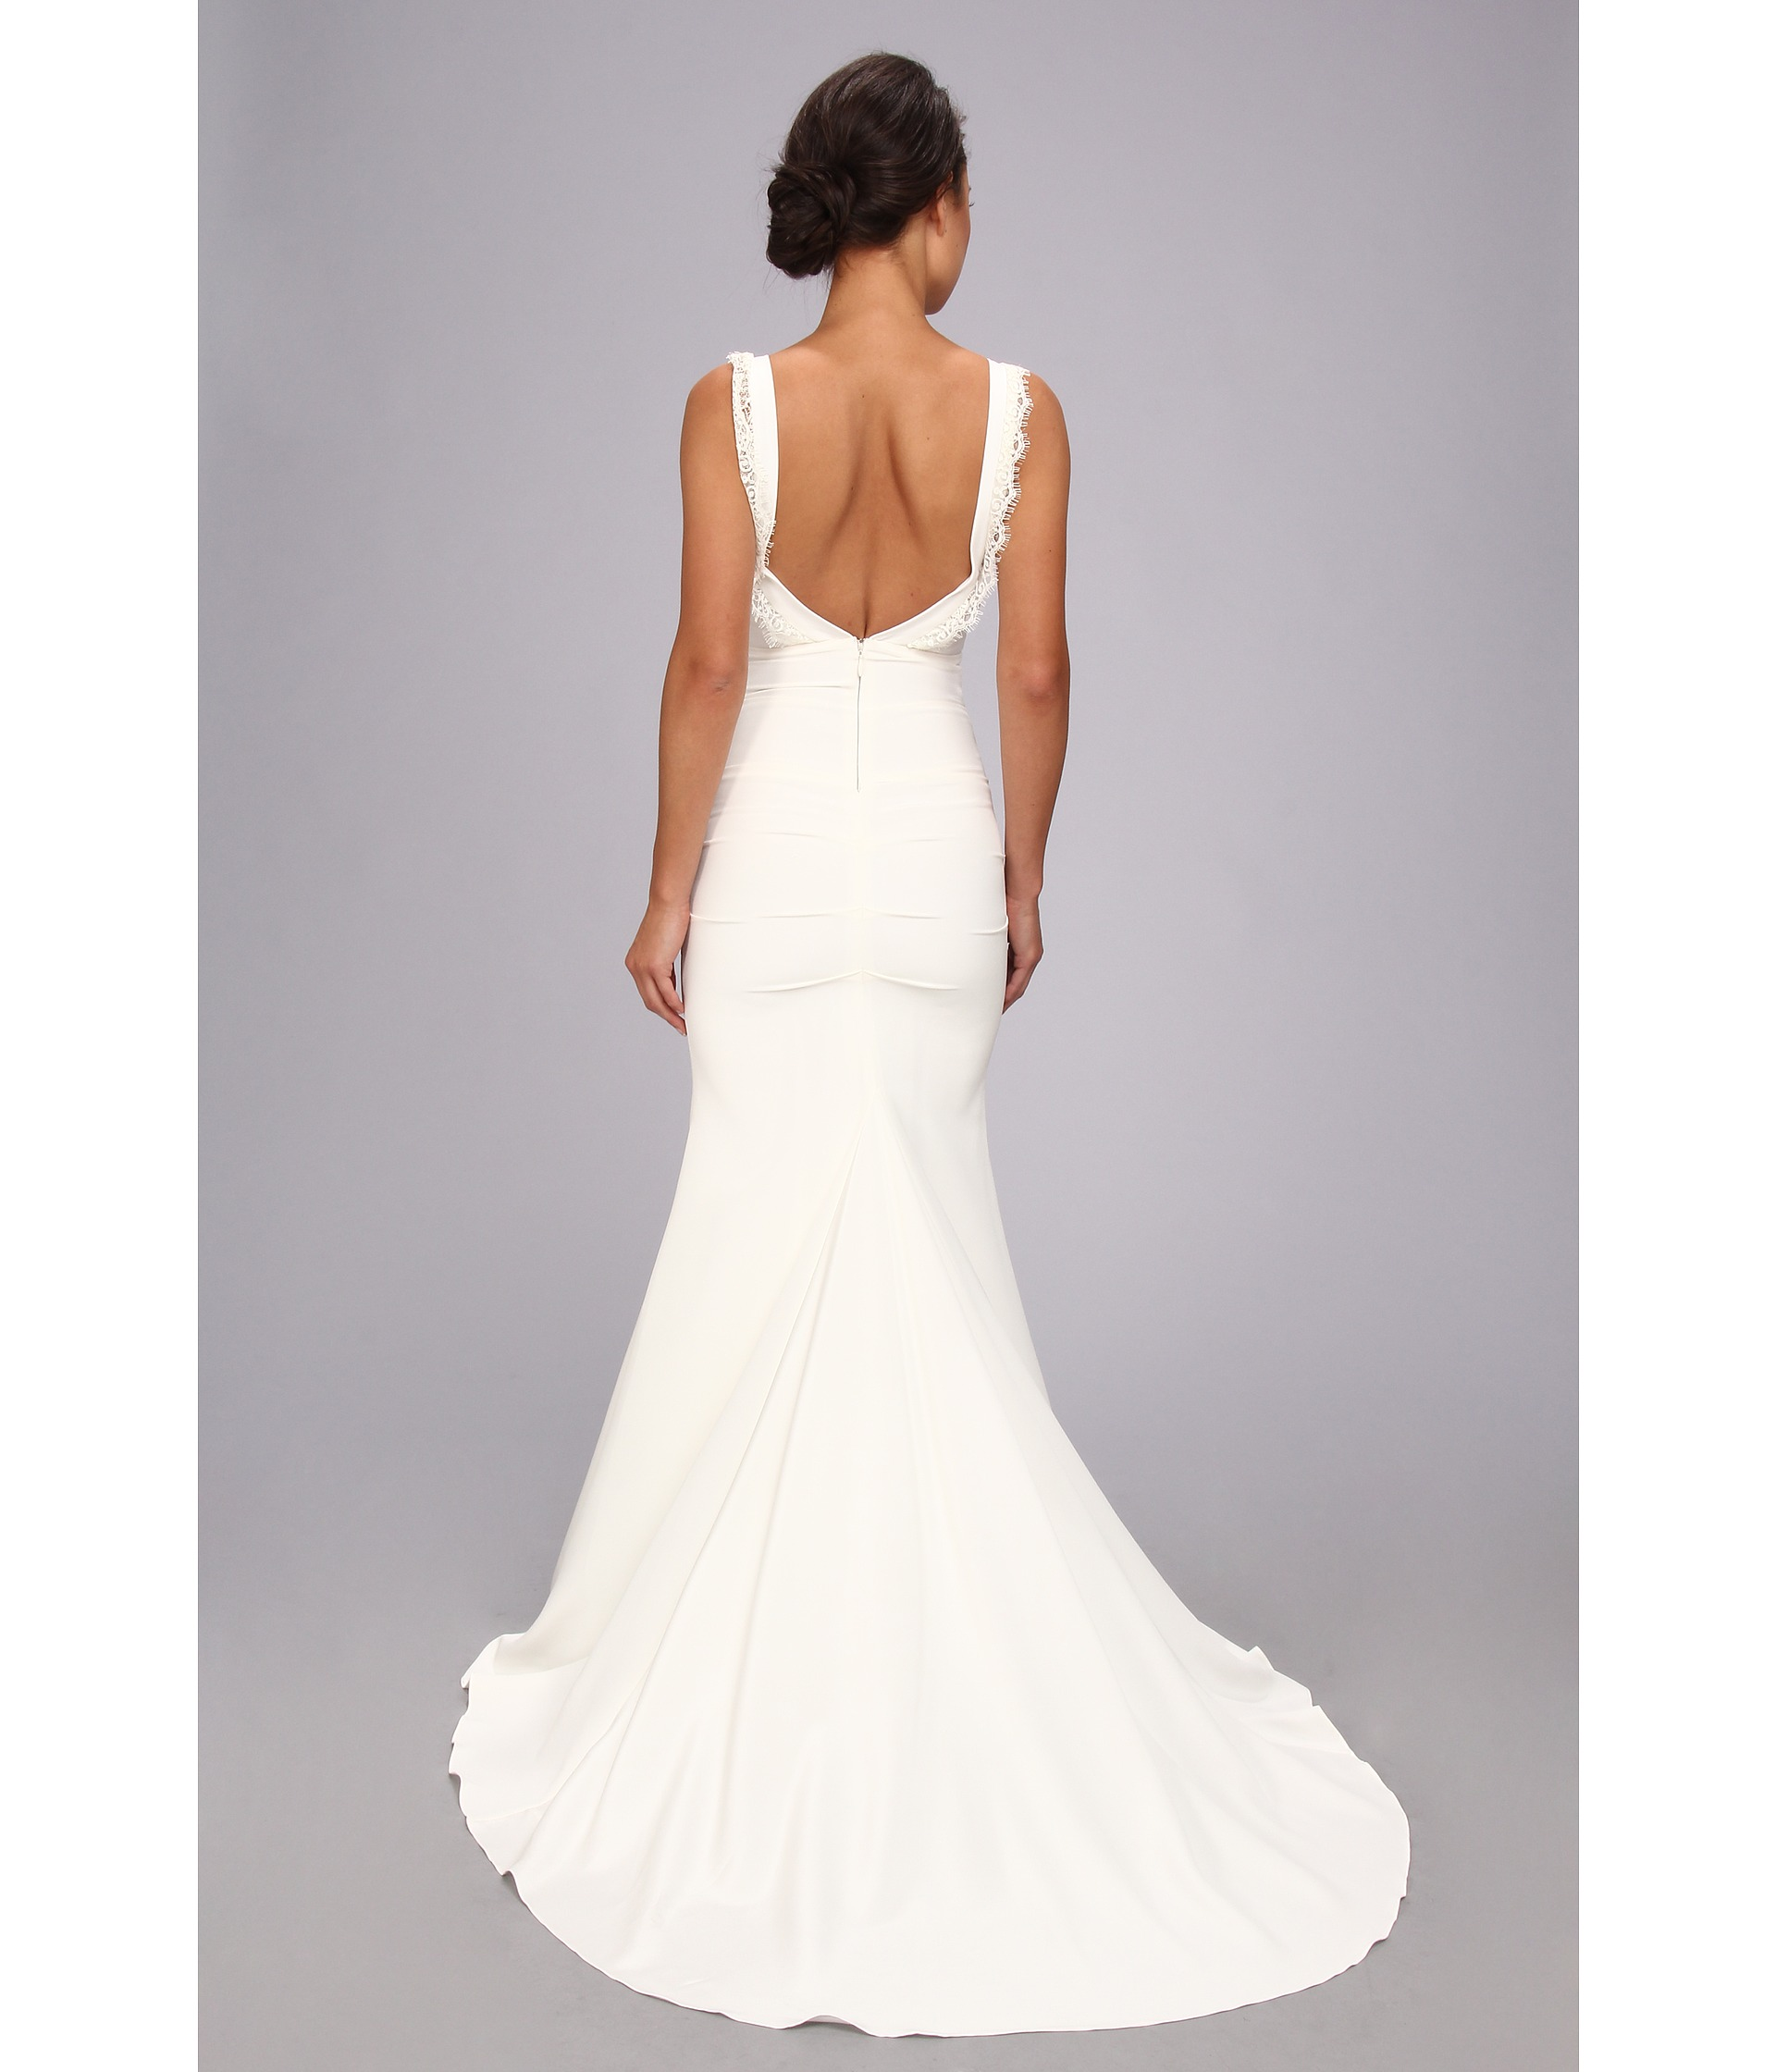 Nicole Miller Alexis Low Back Bridal Gown - Zappos.com Free ...